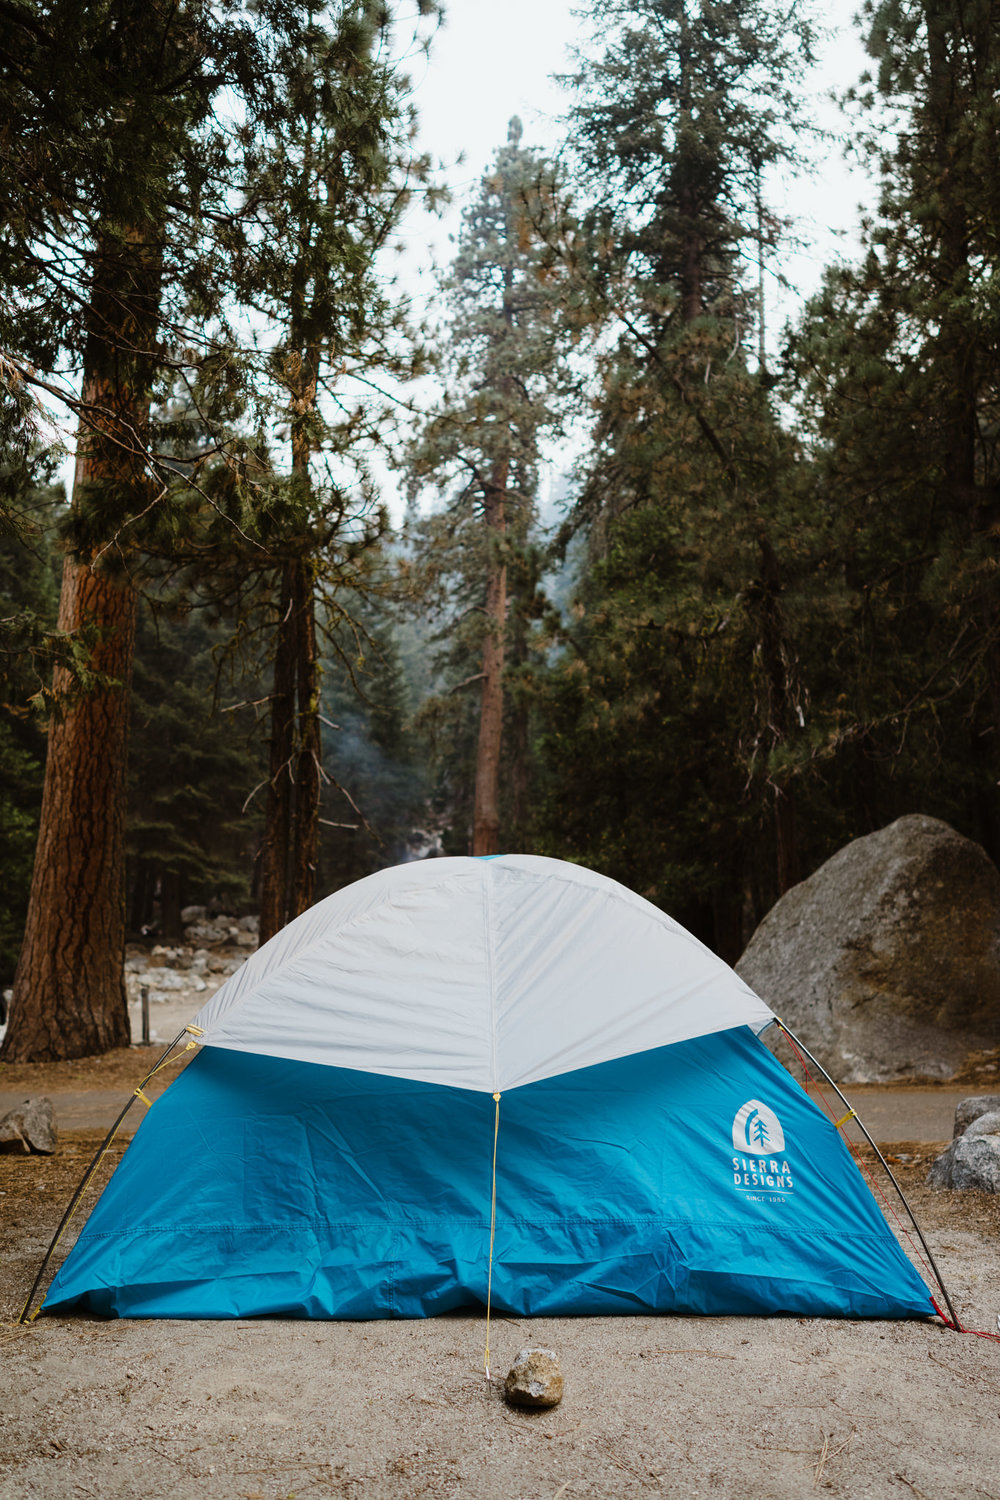 20170903-Shoestring-Adventures-Camping-Sequoia-15.jpg